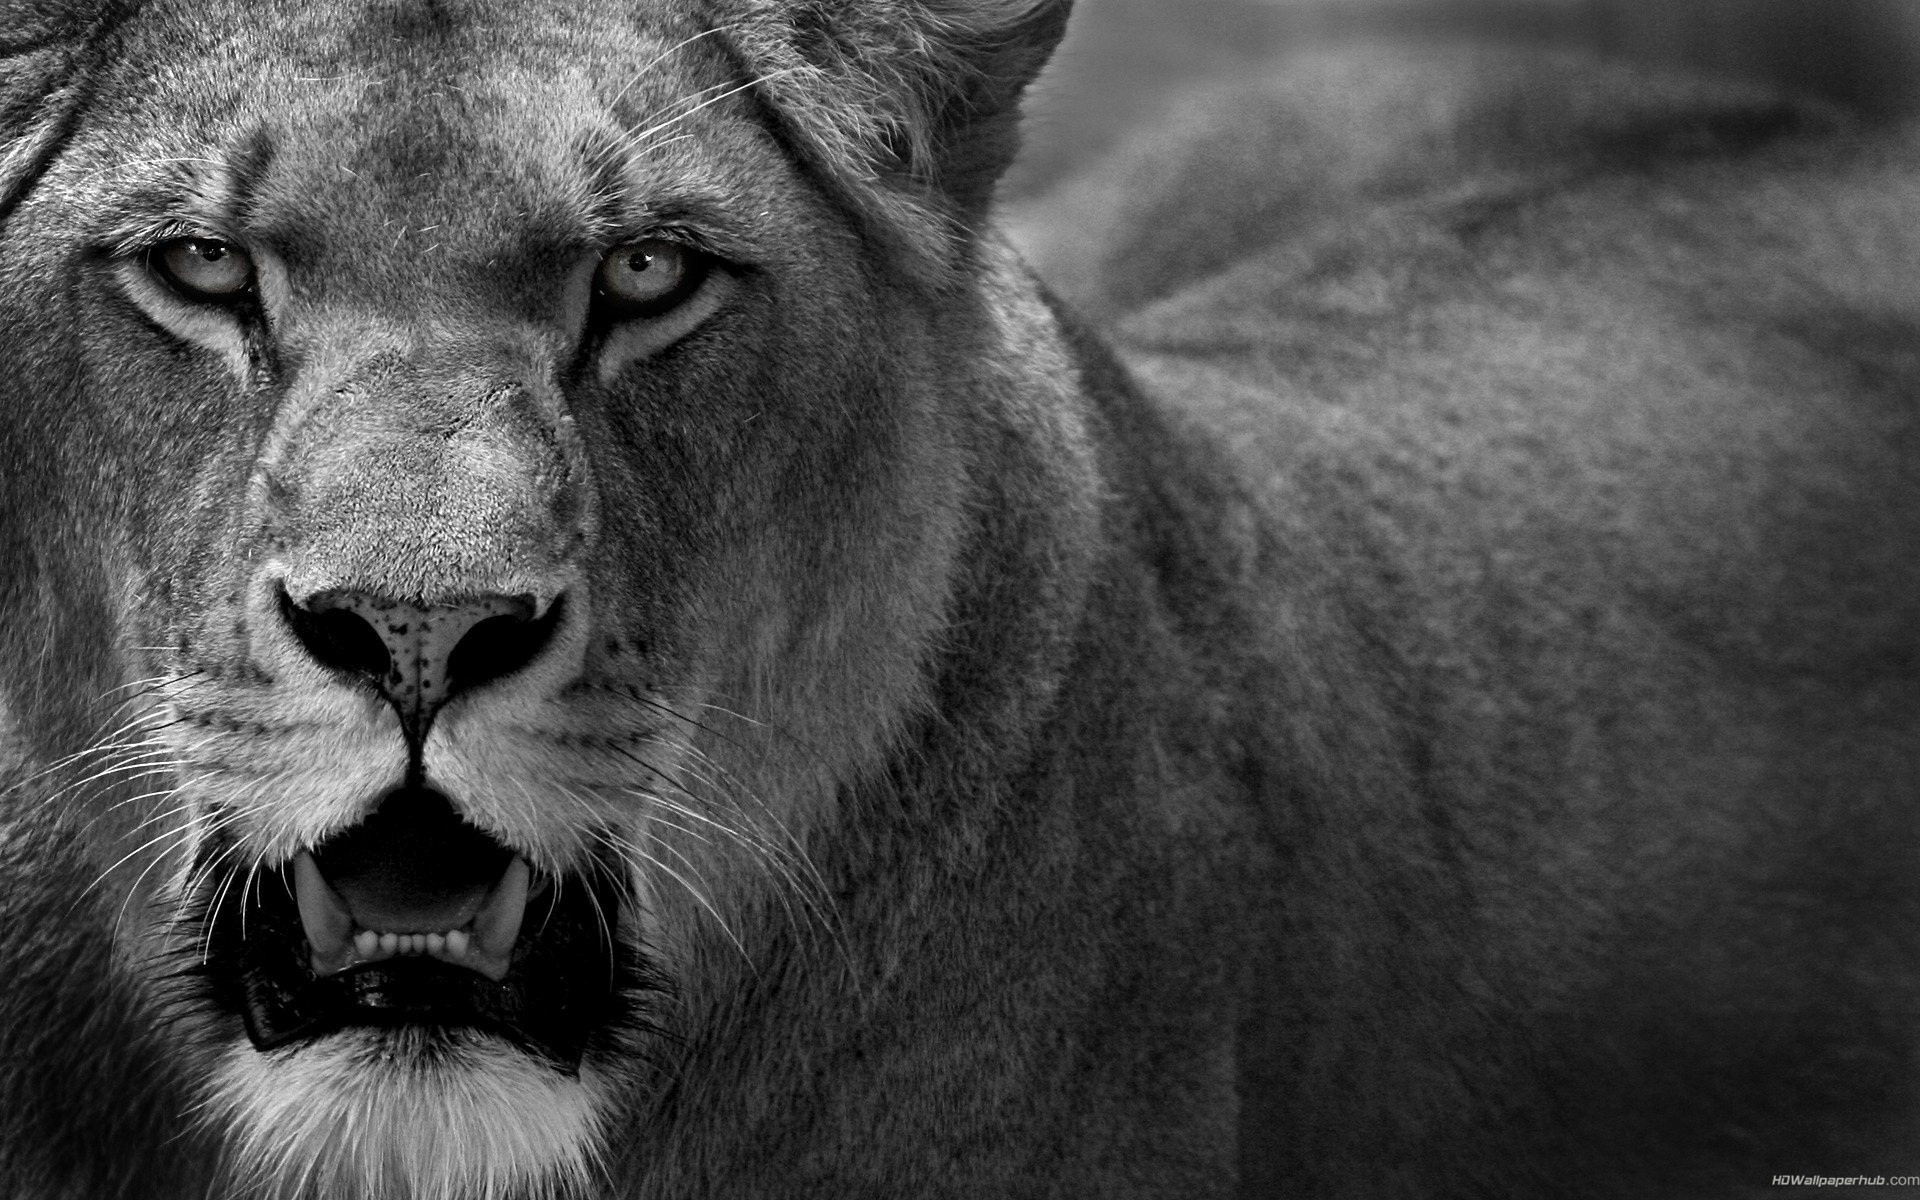 Angry Lions Hd Wallpaper - Lions Angry , HD Wallpaper & Backgrounds